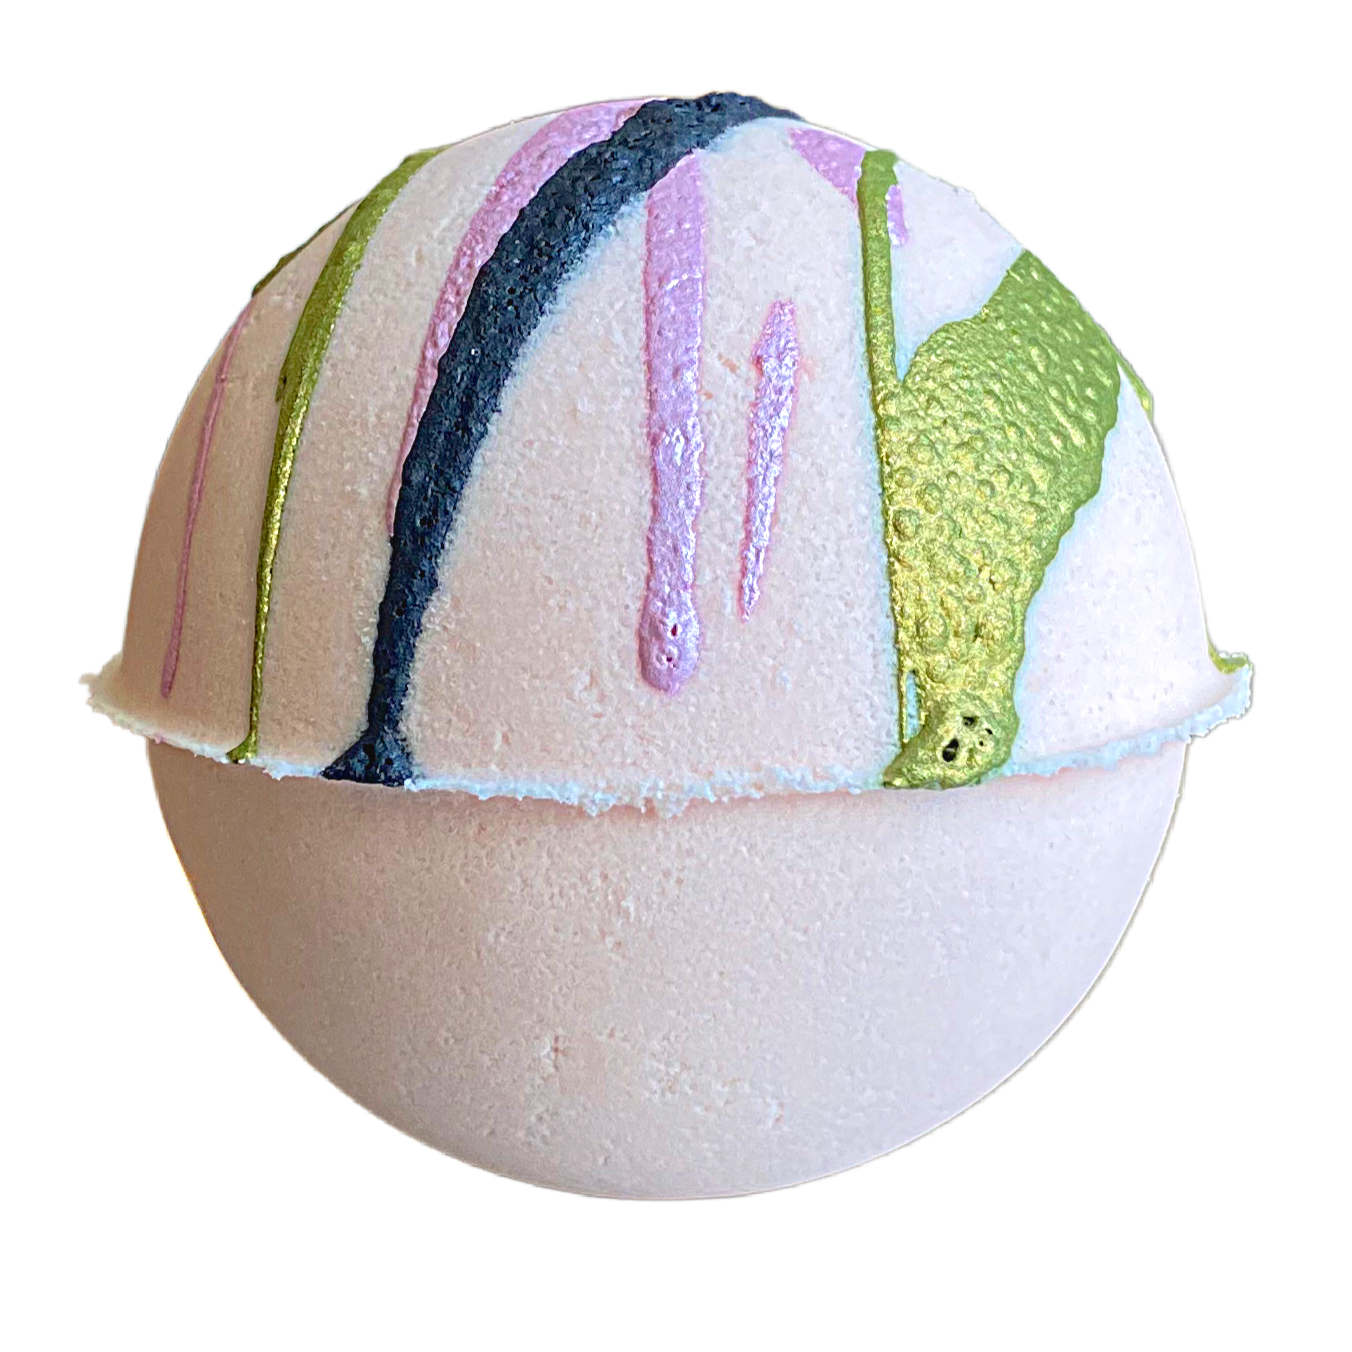 Splendor Shea Butter Bath Bomb